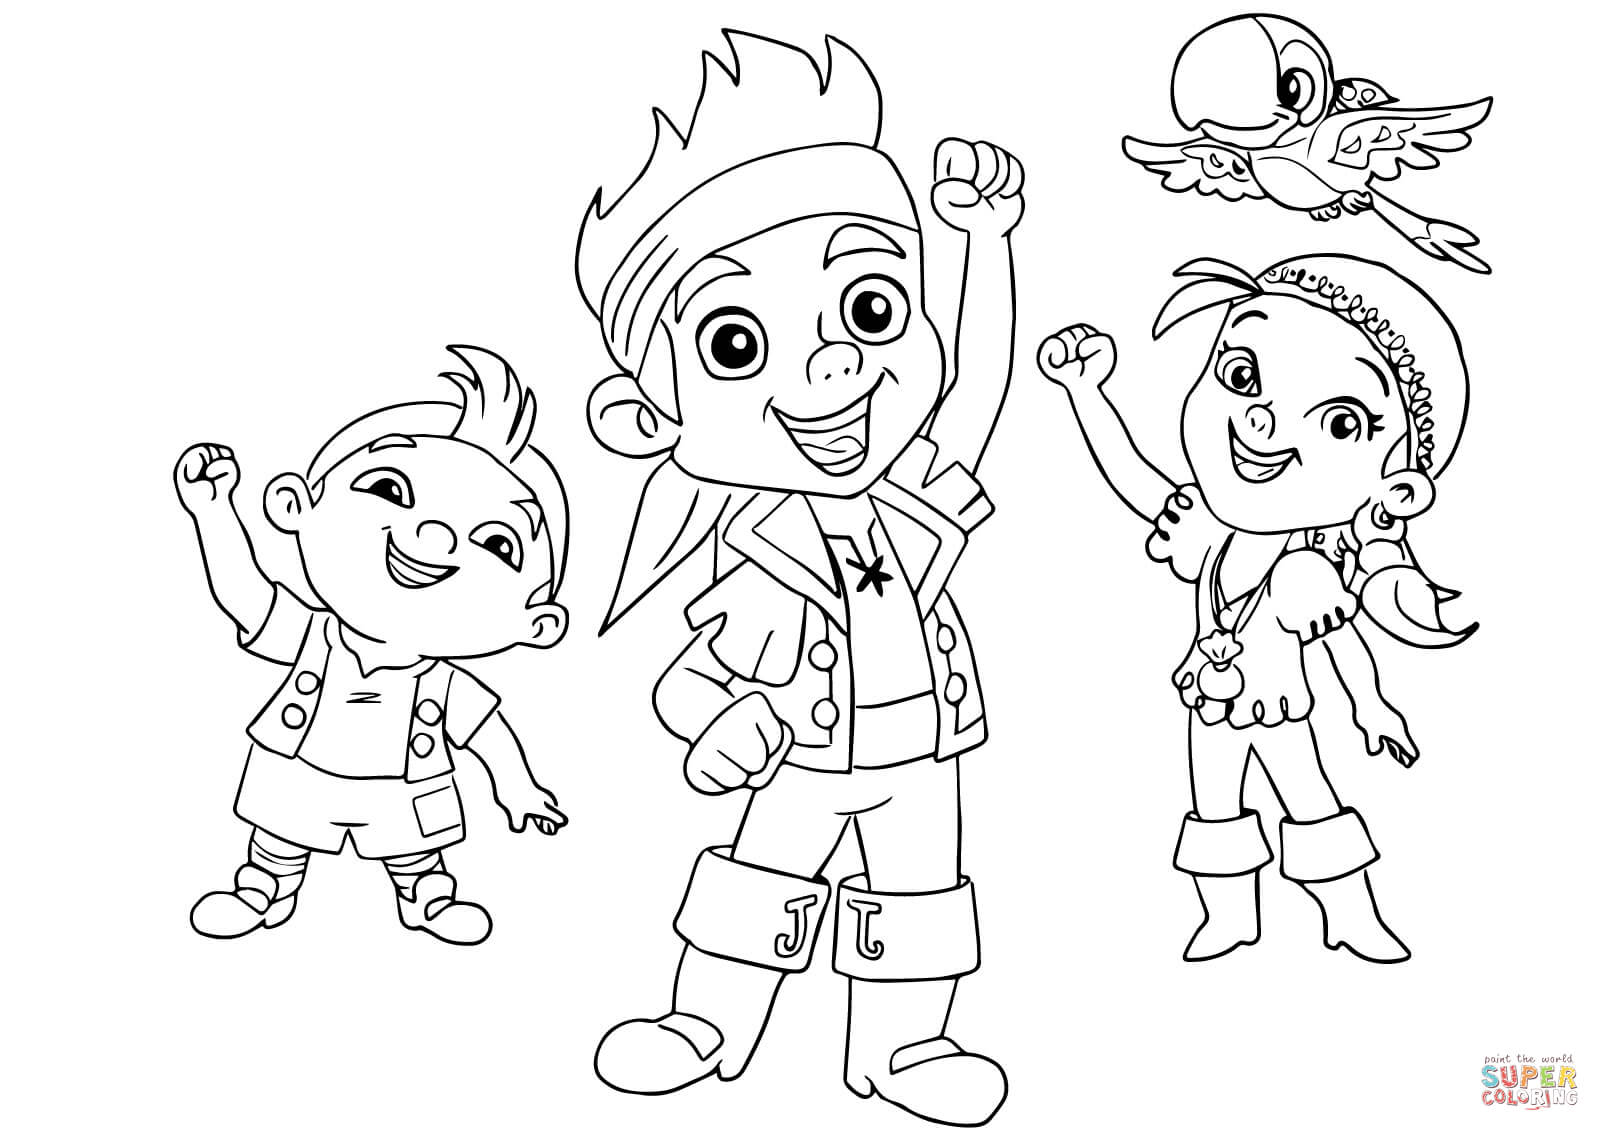 Coloring Pages Jake And The Pirates Coloring Pages jake the pirate coloring pages eassume com for captain and neverland pirates az